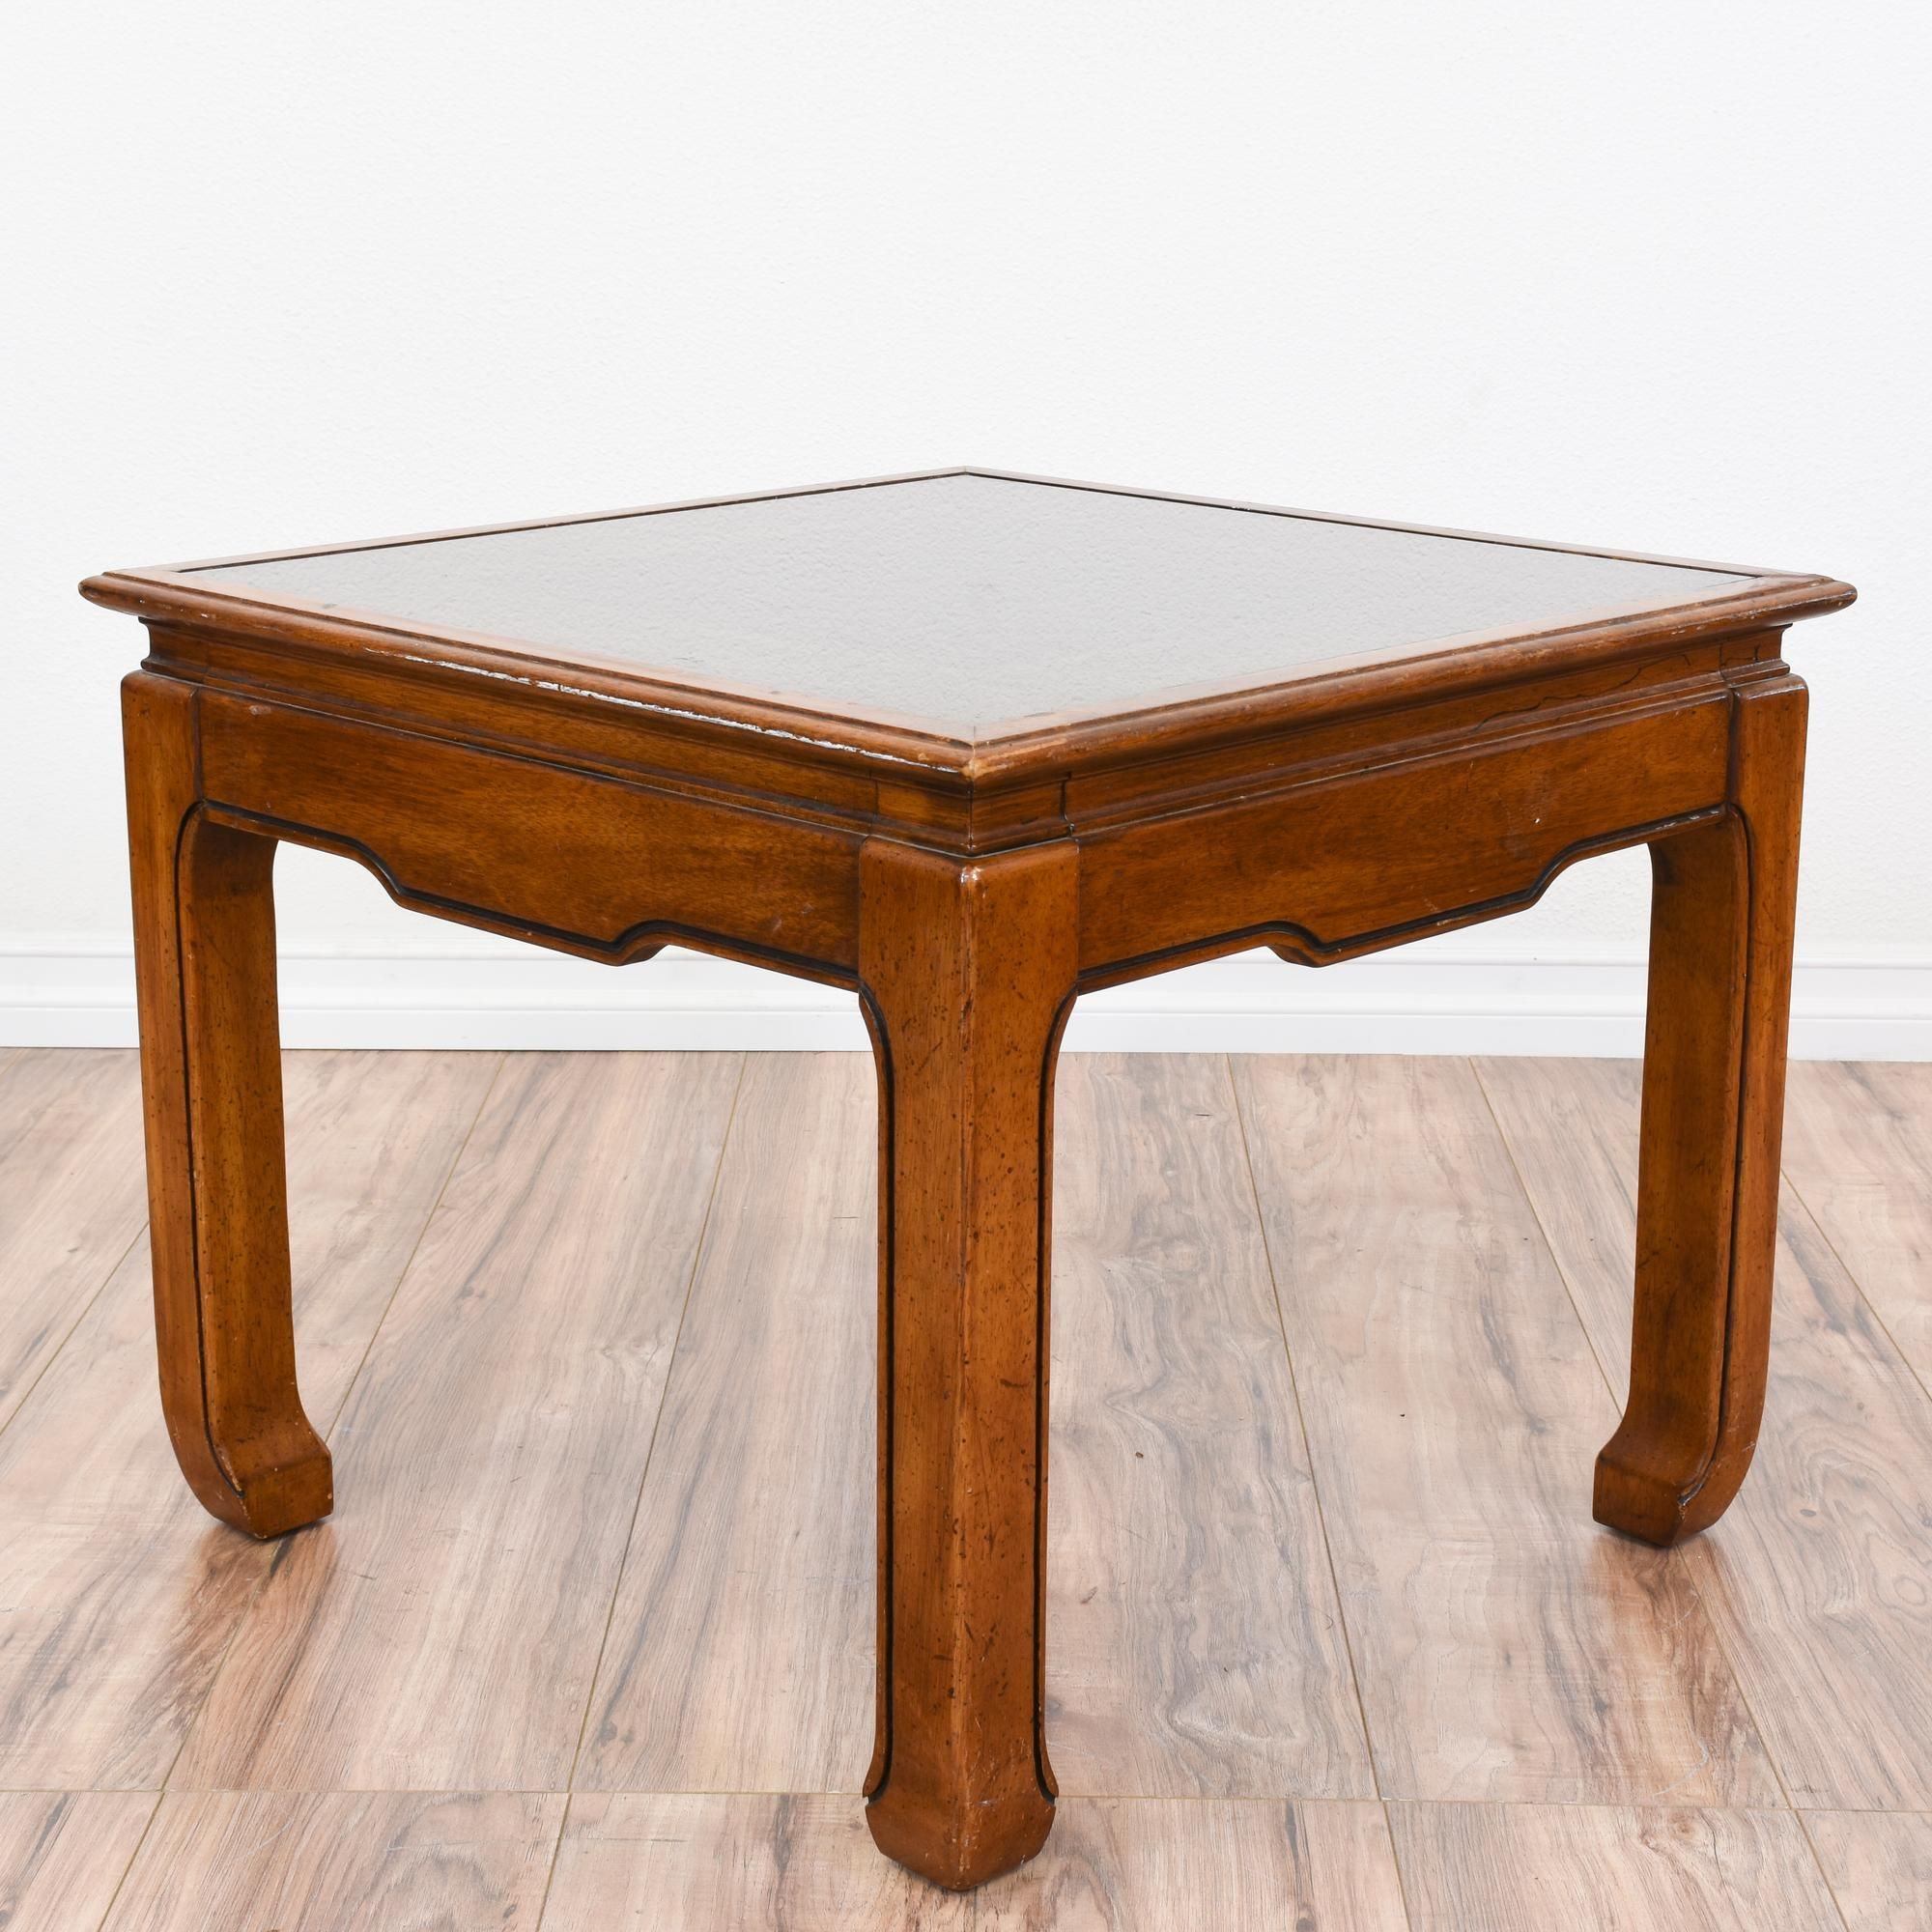 This Asian Inspired End Table Is Featured In A Solid Wood With A Glossy Teak Finish This Tropical Side Table Is In Great Condition With A Sq Glass Top End Tables